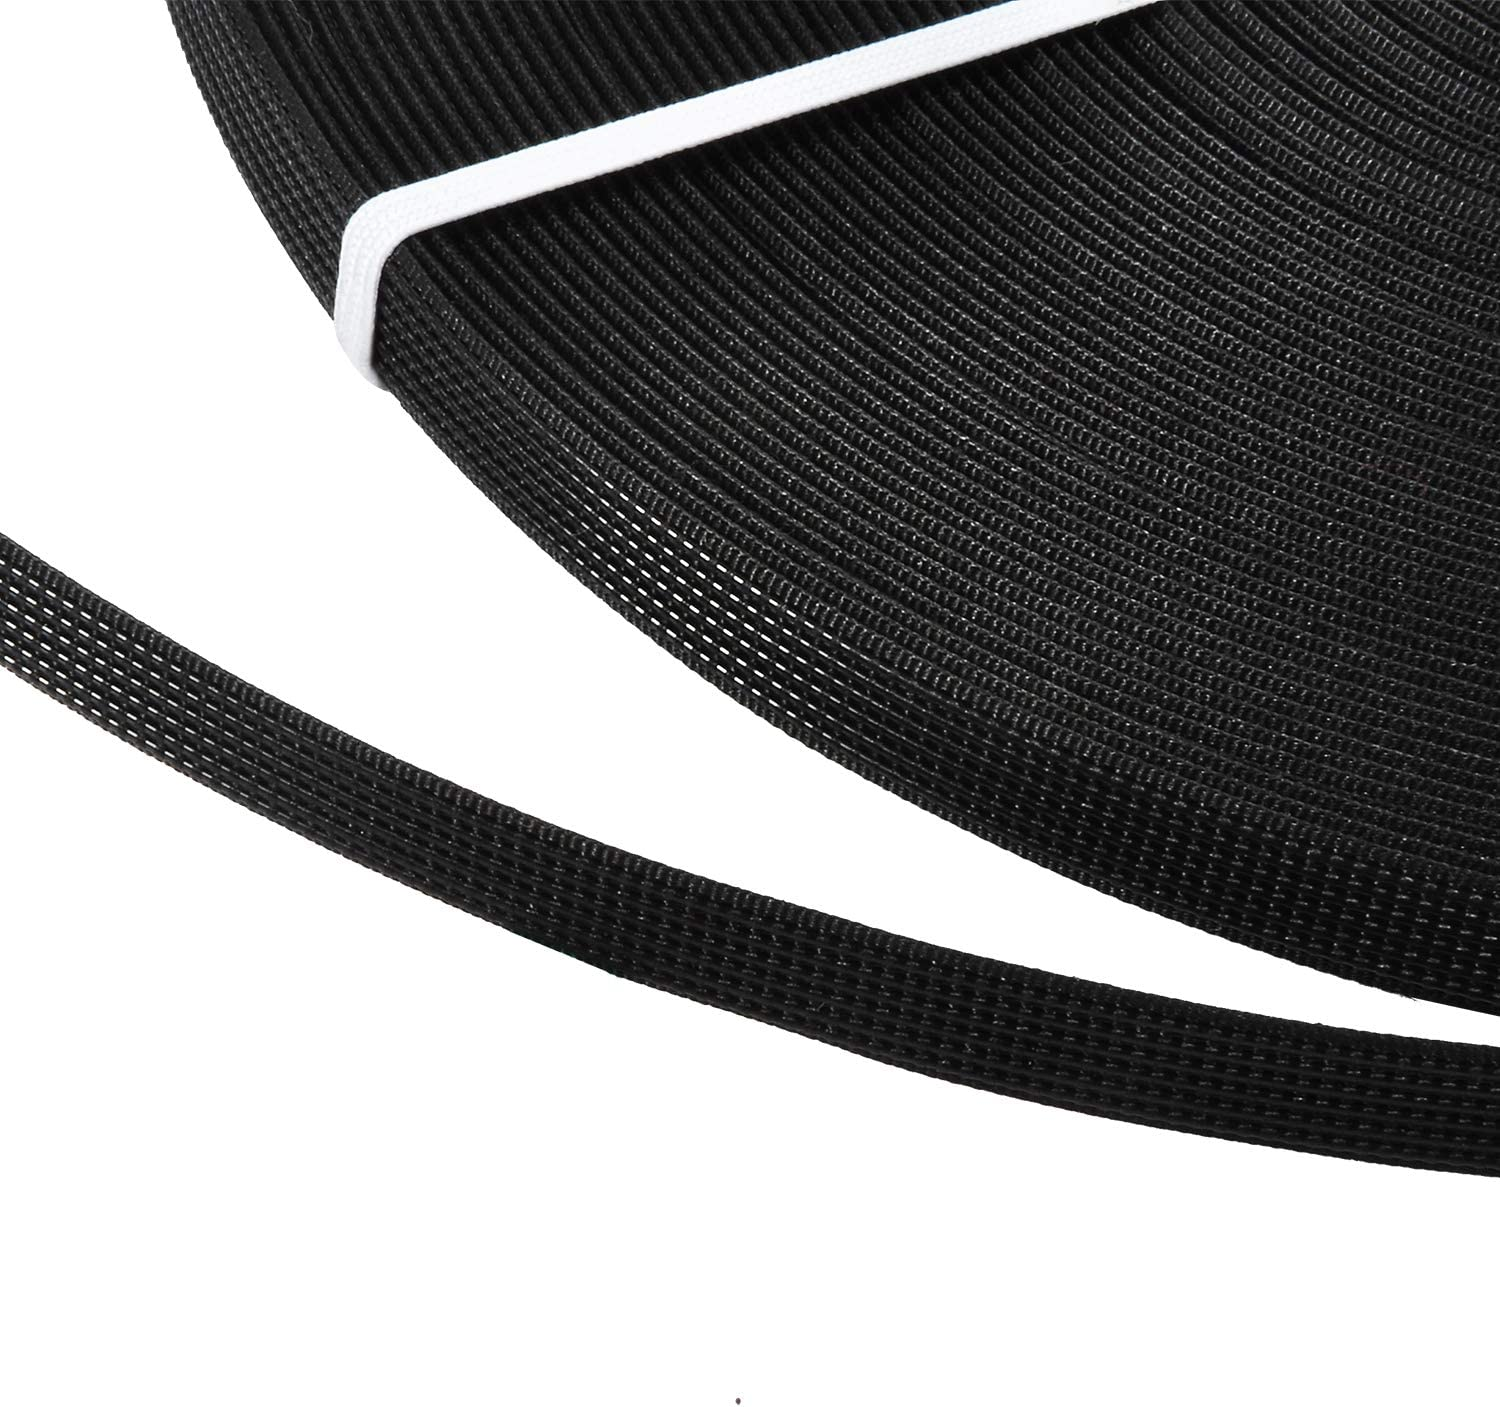 Black 10mm Width Yinkoe 50 Yards Polyester Boning White Boning Through Low Density Boning for Sewing Wedding Dresses Bridal Gowns Bustier Garments and Costumes